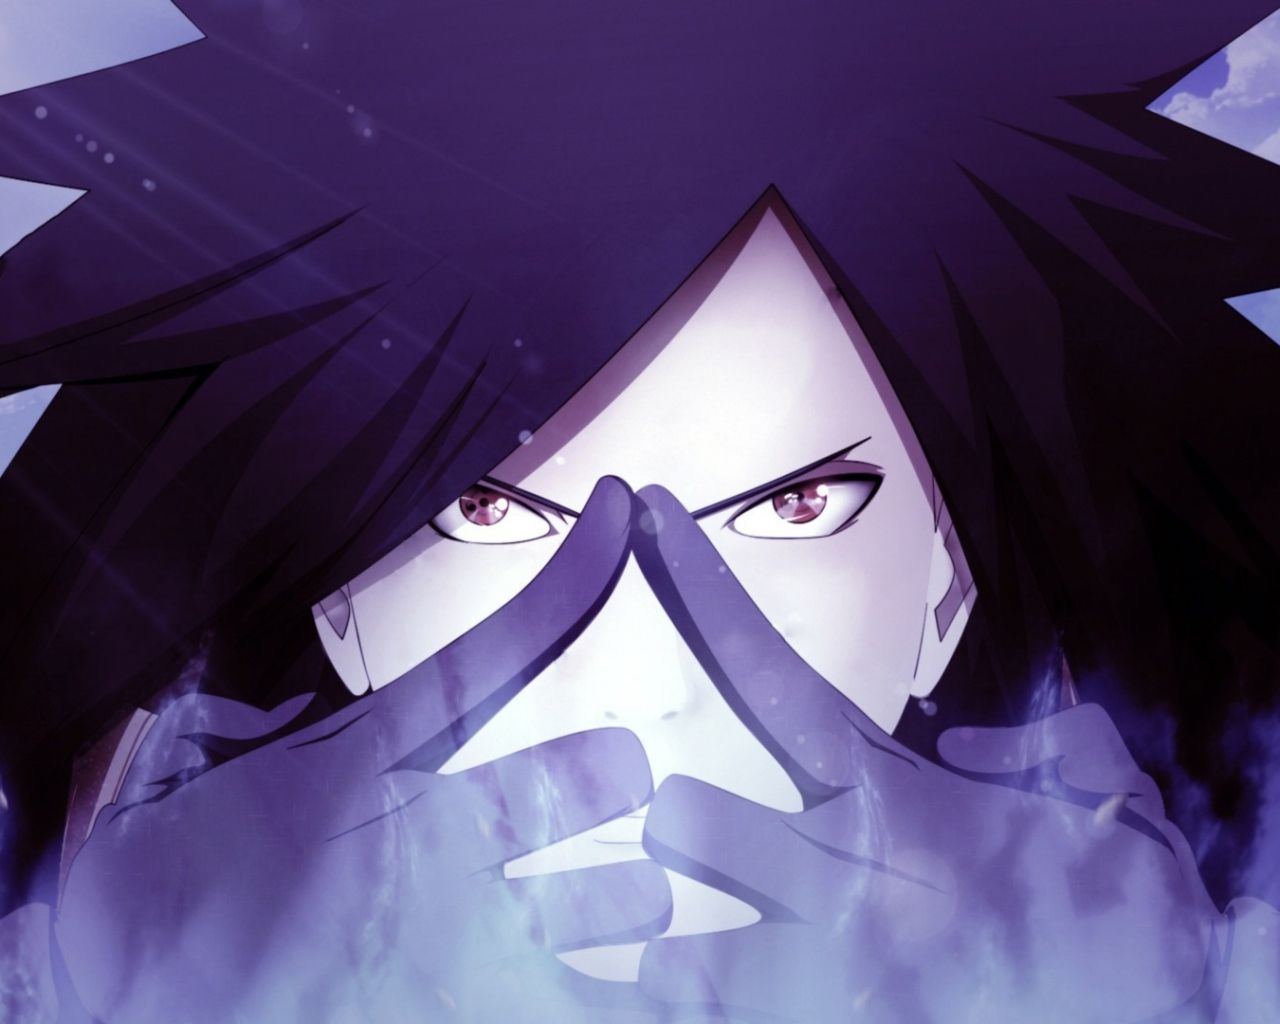 1280x1024 wallpaper madara uchiha, naruto, anime, obito, tobi